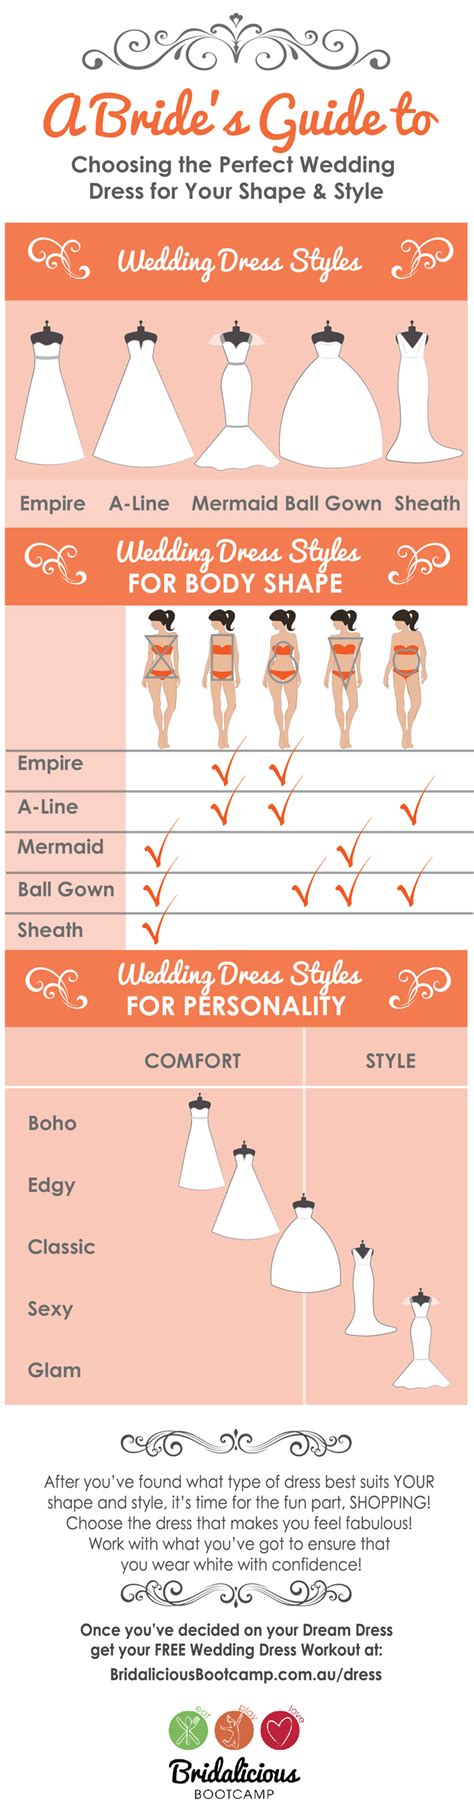 wedding dress types for body types quiz wedding decoration how to choose the perfect wedding dress for your body type